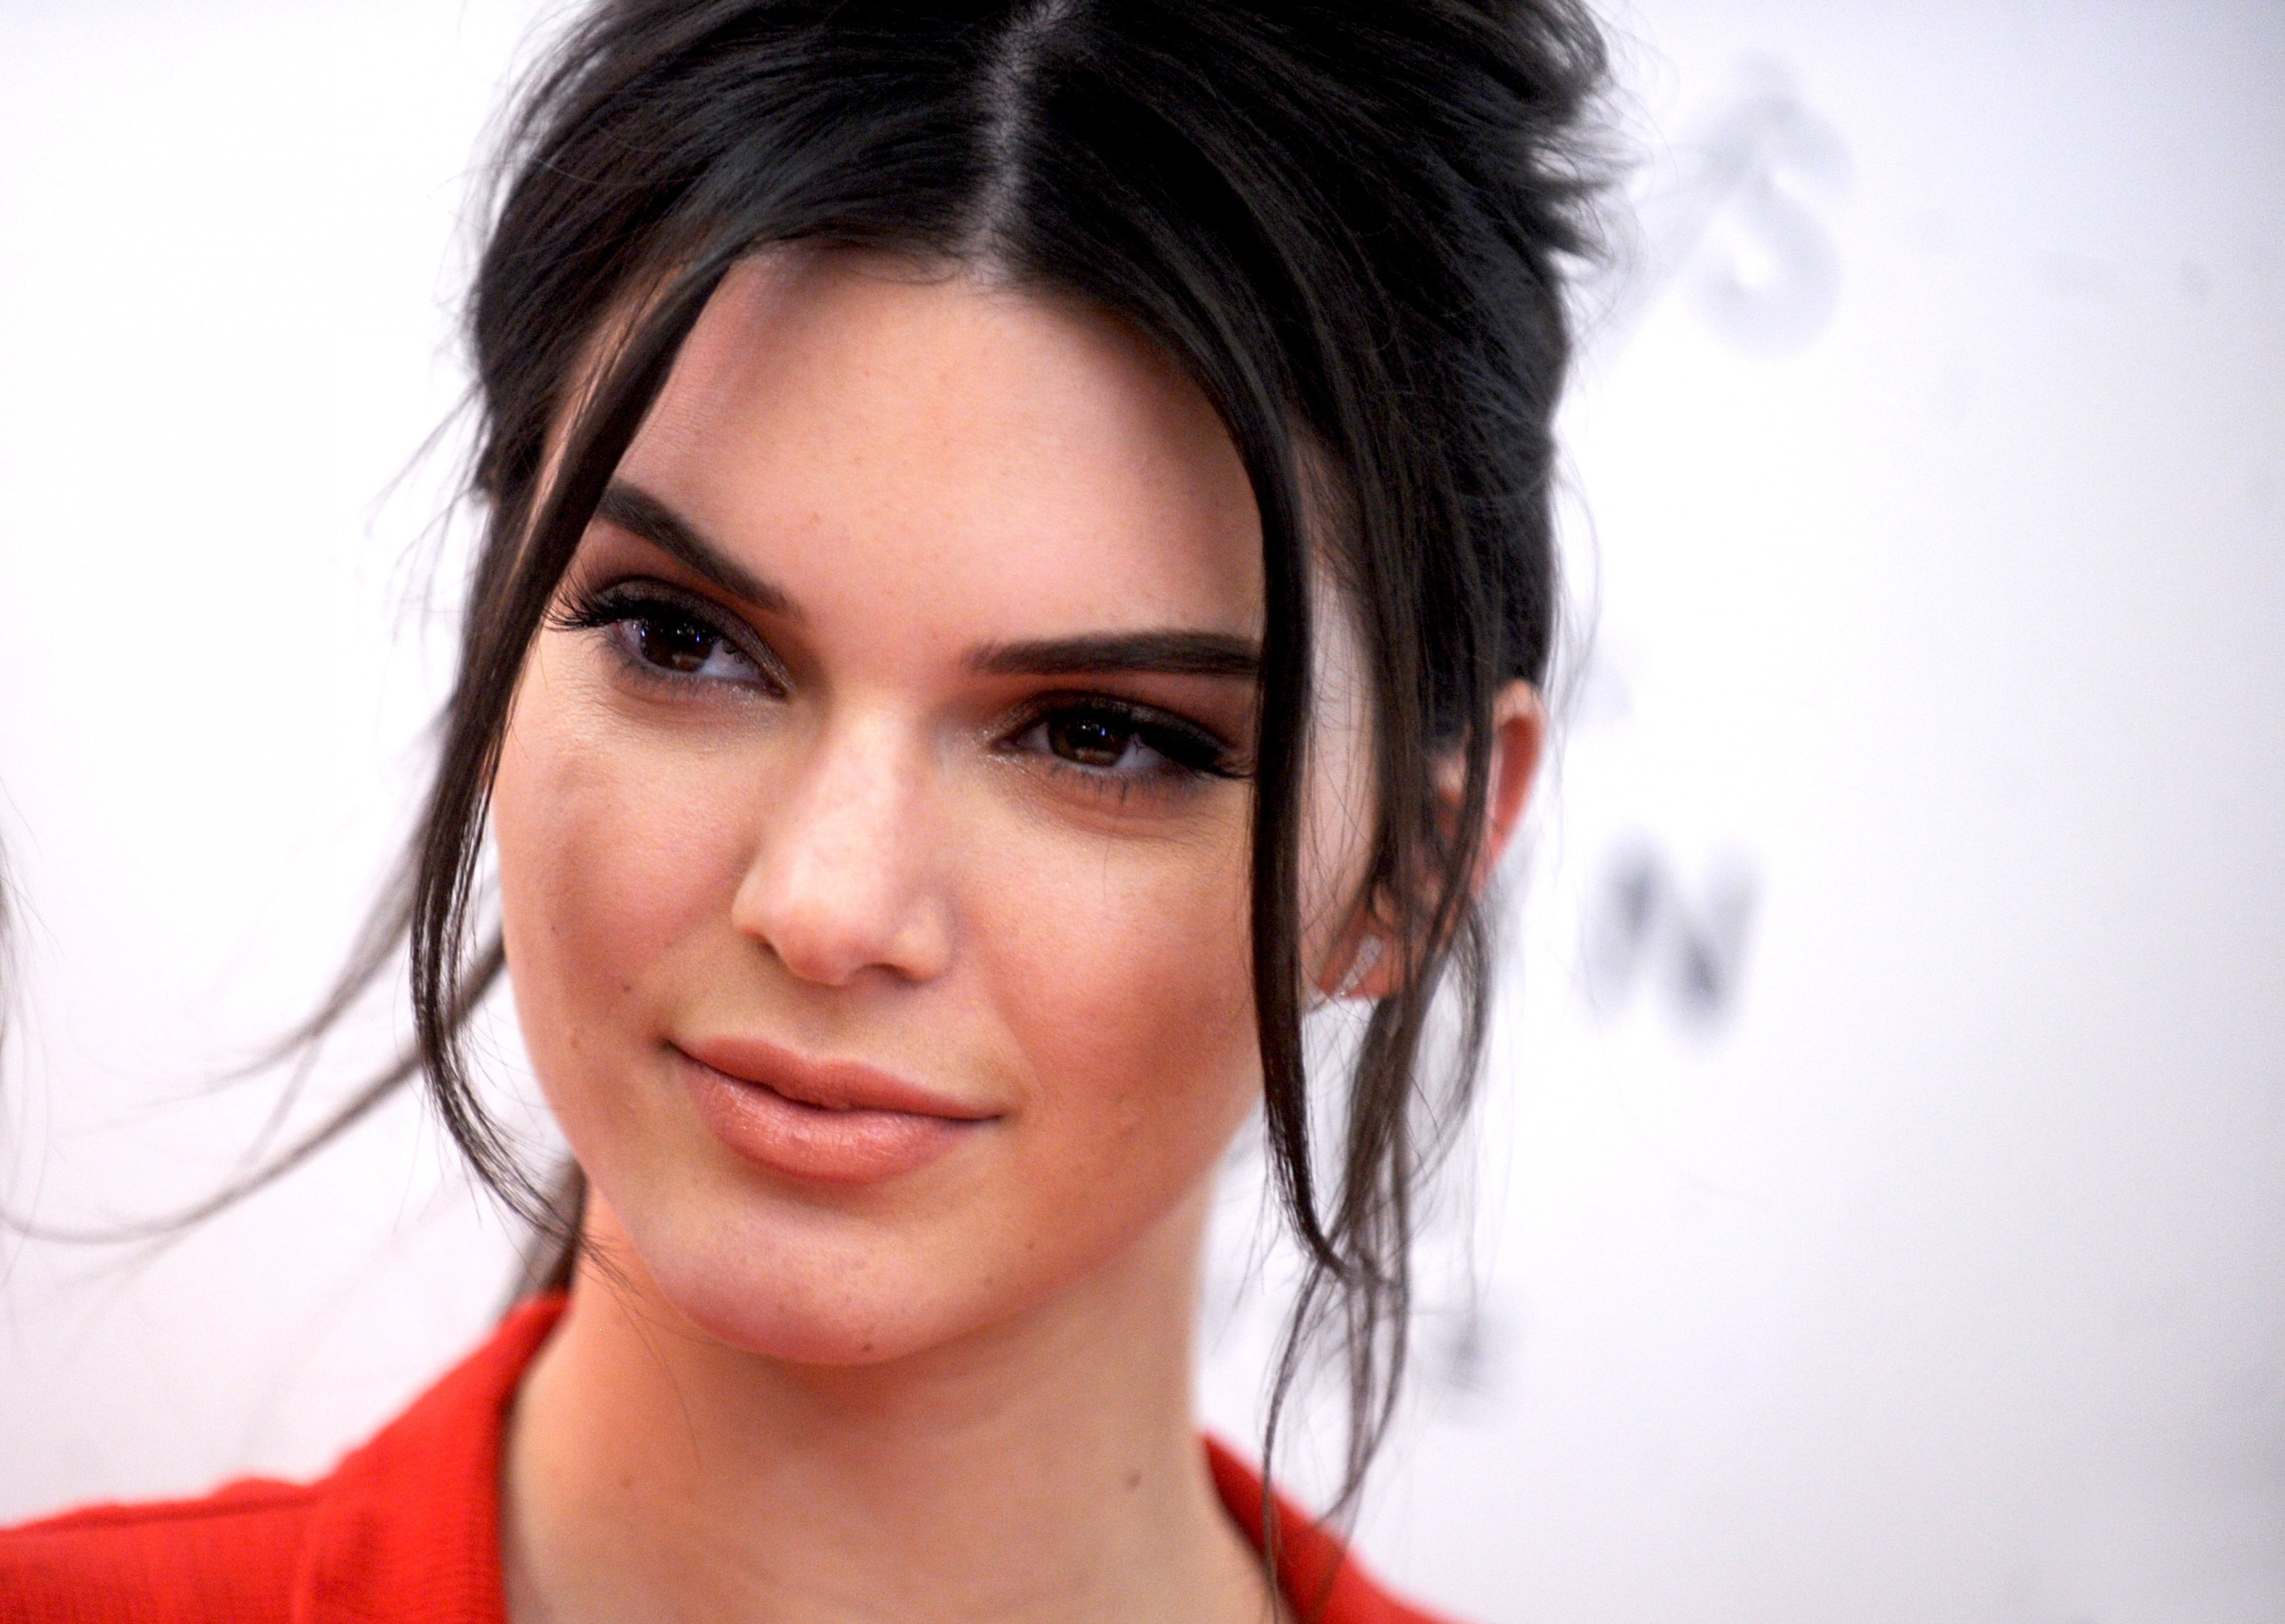 Kendall Jenner pictured at the launch of Estee Lauder's newest fragrance, Modern Muse Le Rouge at Macy's in New York City, NY, USA, September 18, 2015. Photo by Dennis van Tine/ABACAPRESS.COM